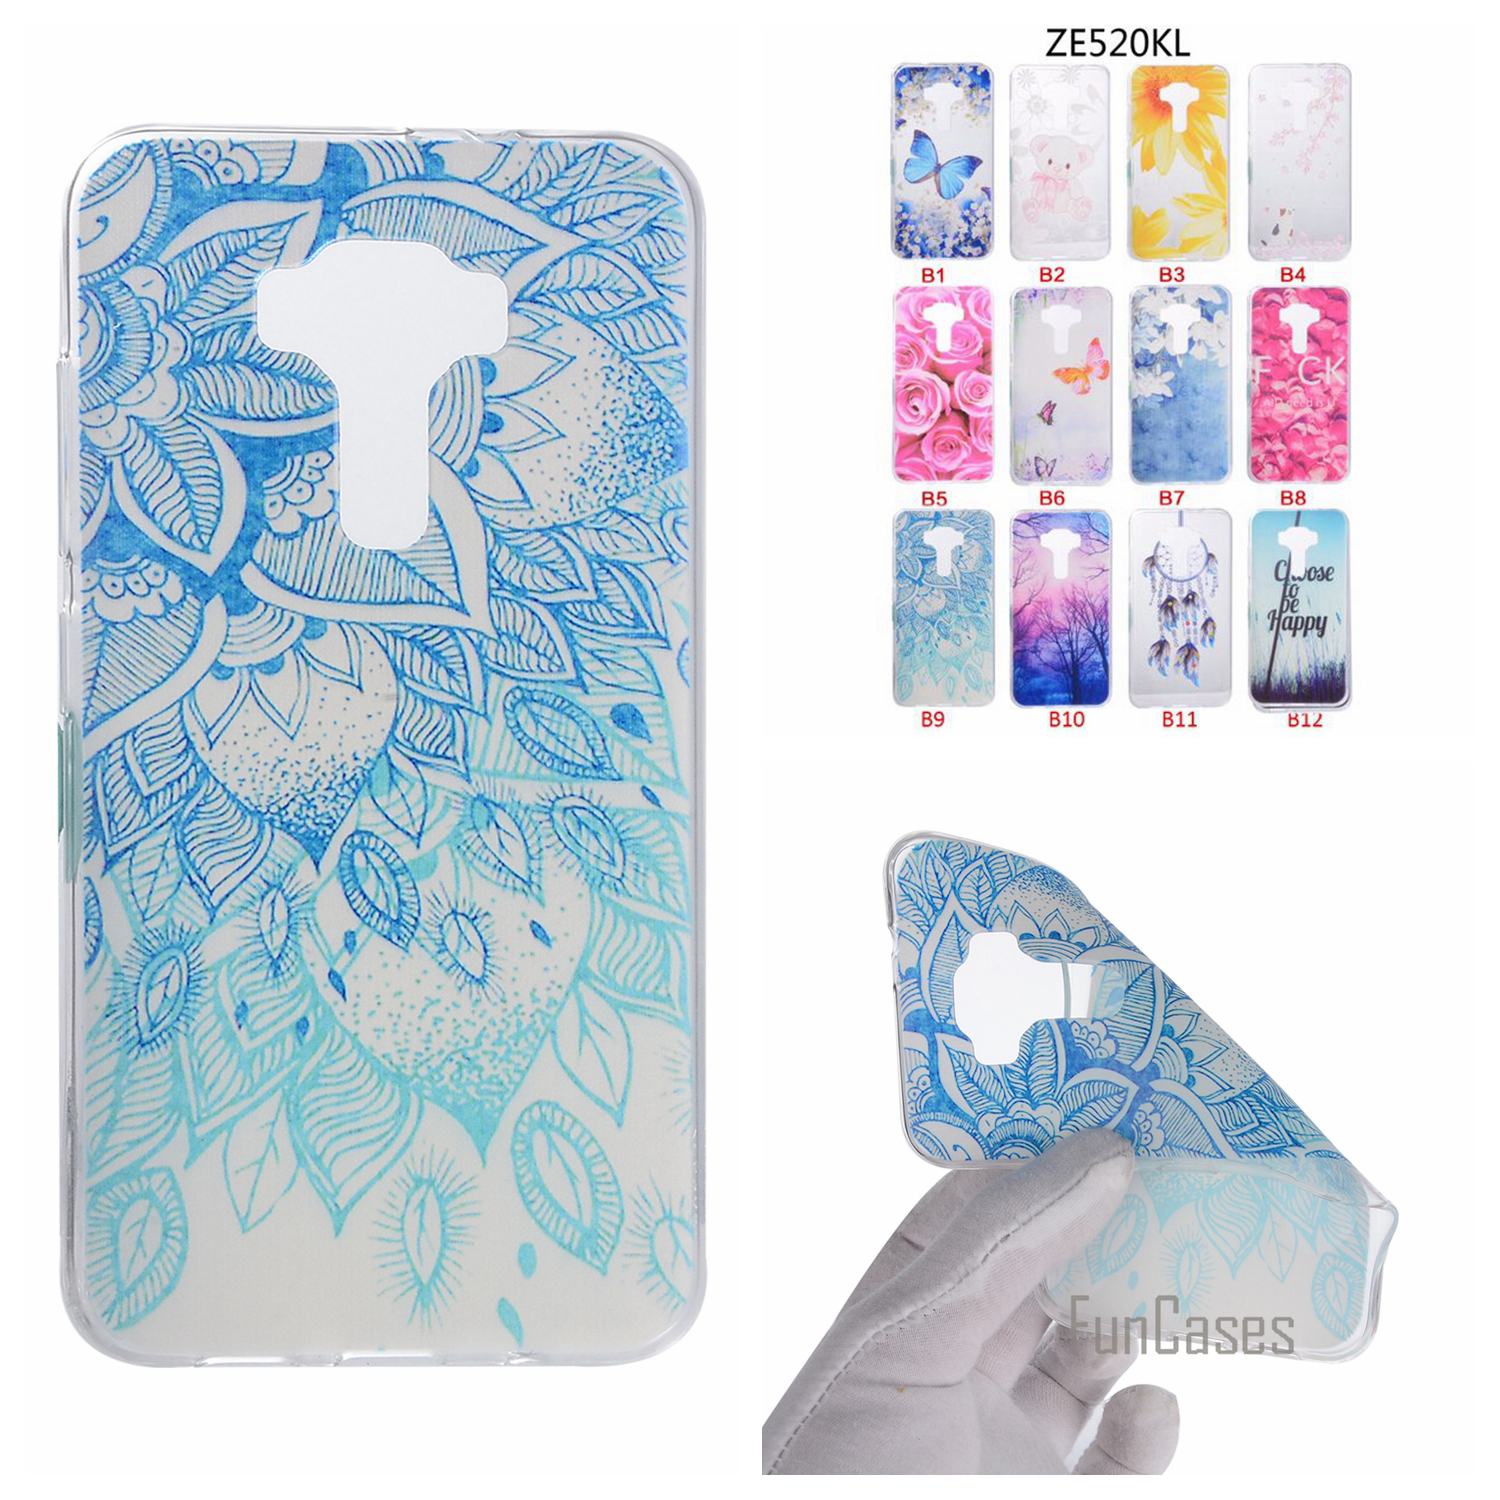 Cartoon Flower Butterfly Bear Tree Cute Back Cover Silicon Soft TPU Mobile Phone Case For ASUS ZE520KL coque Zenfone 3 ZE520KL <